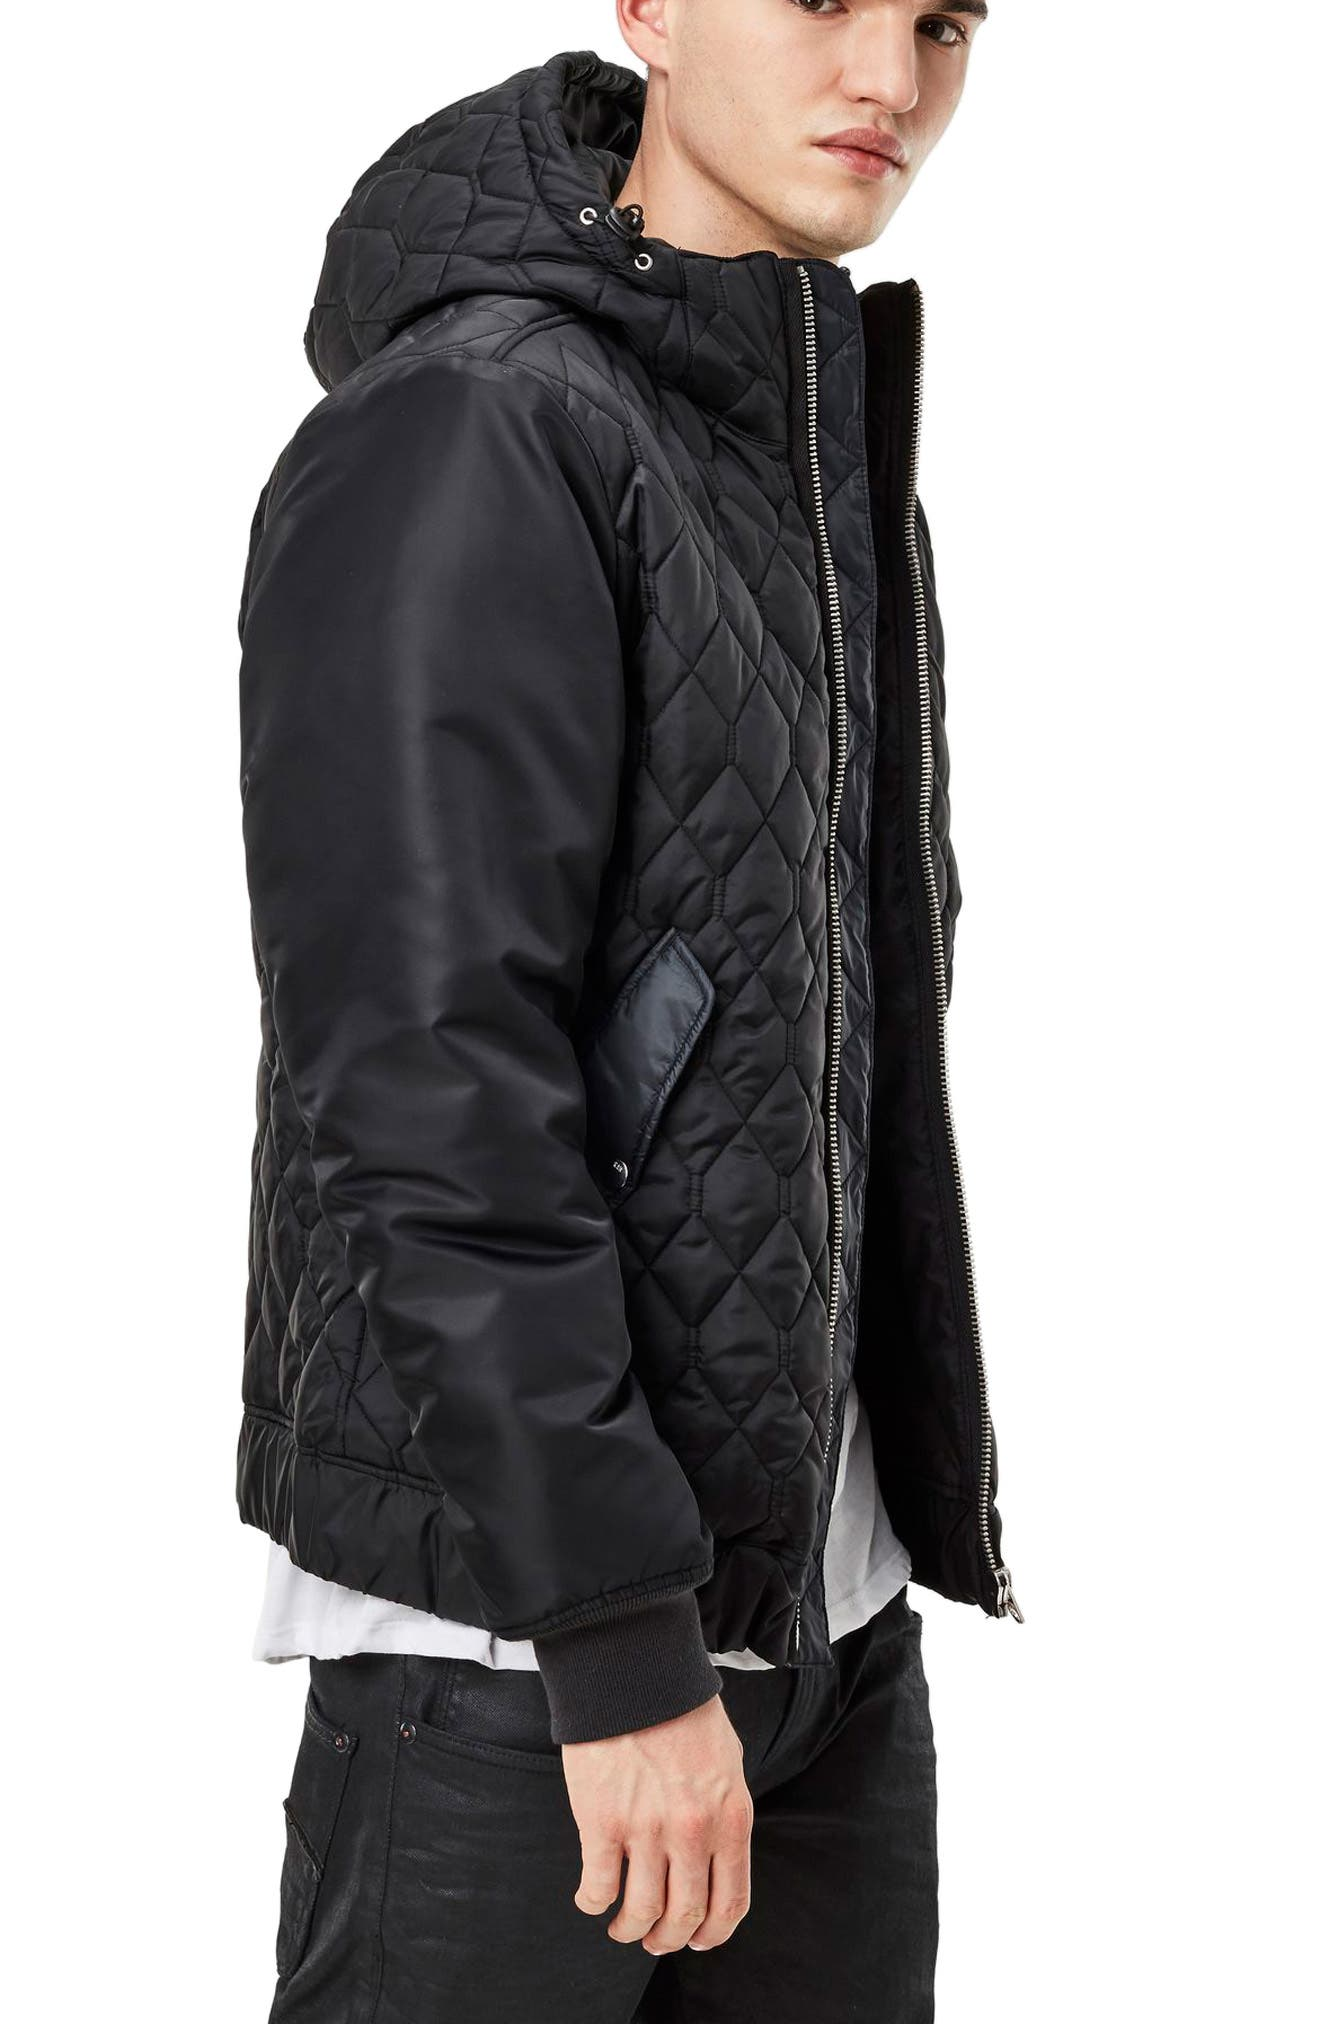 Meefic Hybrid Quilted Jacket,                             Alternate thumbnail 3, color,                             001